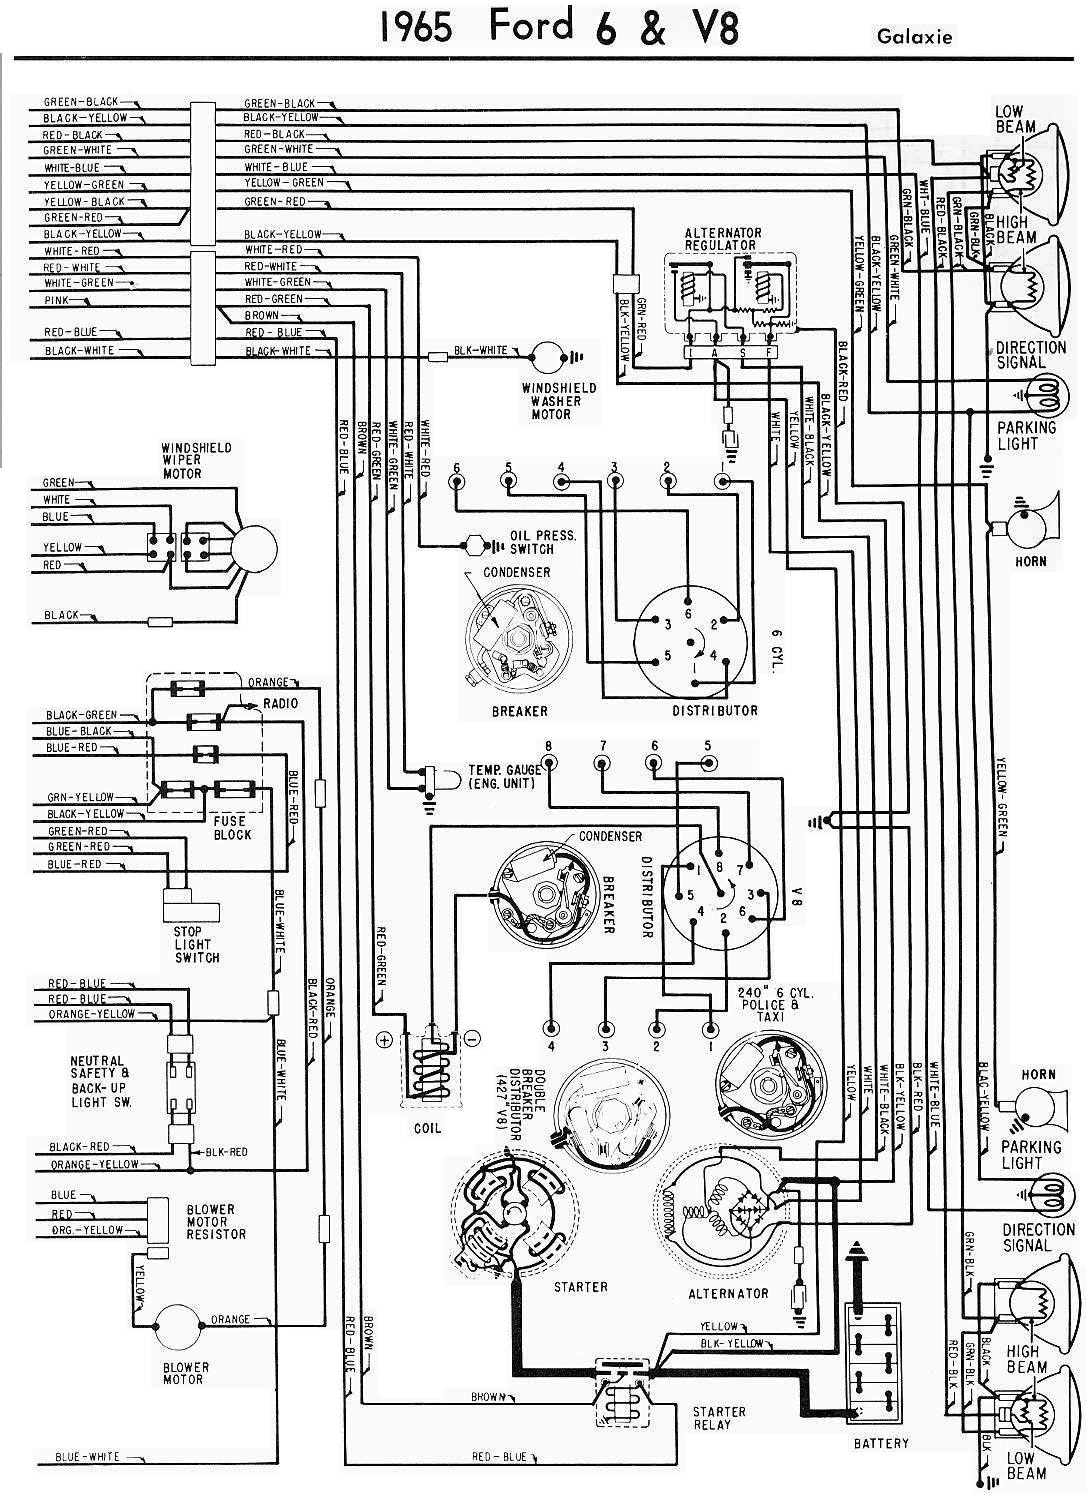 1965 ford galaxie complete electrical wiring diagram part 2 all 1965 ford galaxie complete electrical wiring diagram part 2